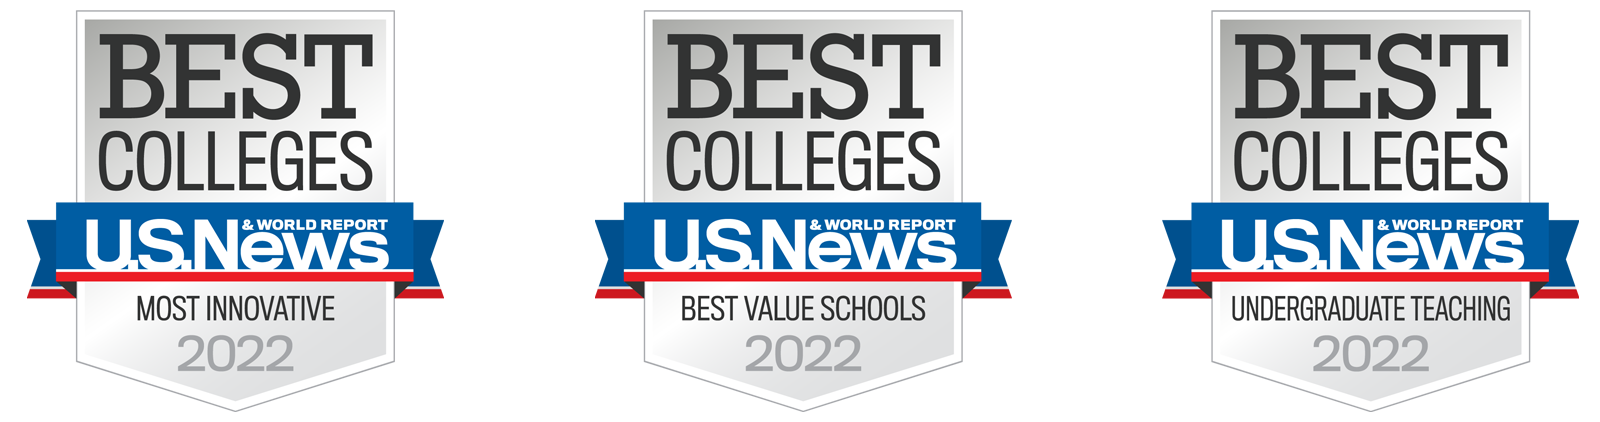 Badges showing Creighton is a best U.S. college for service, innovation, undergrad teaching and value